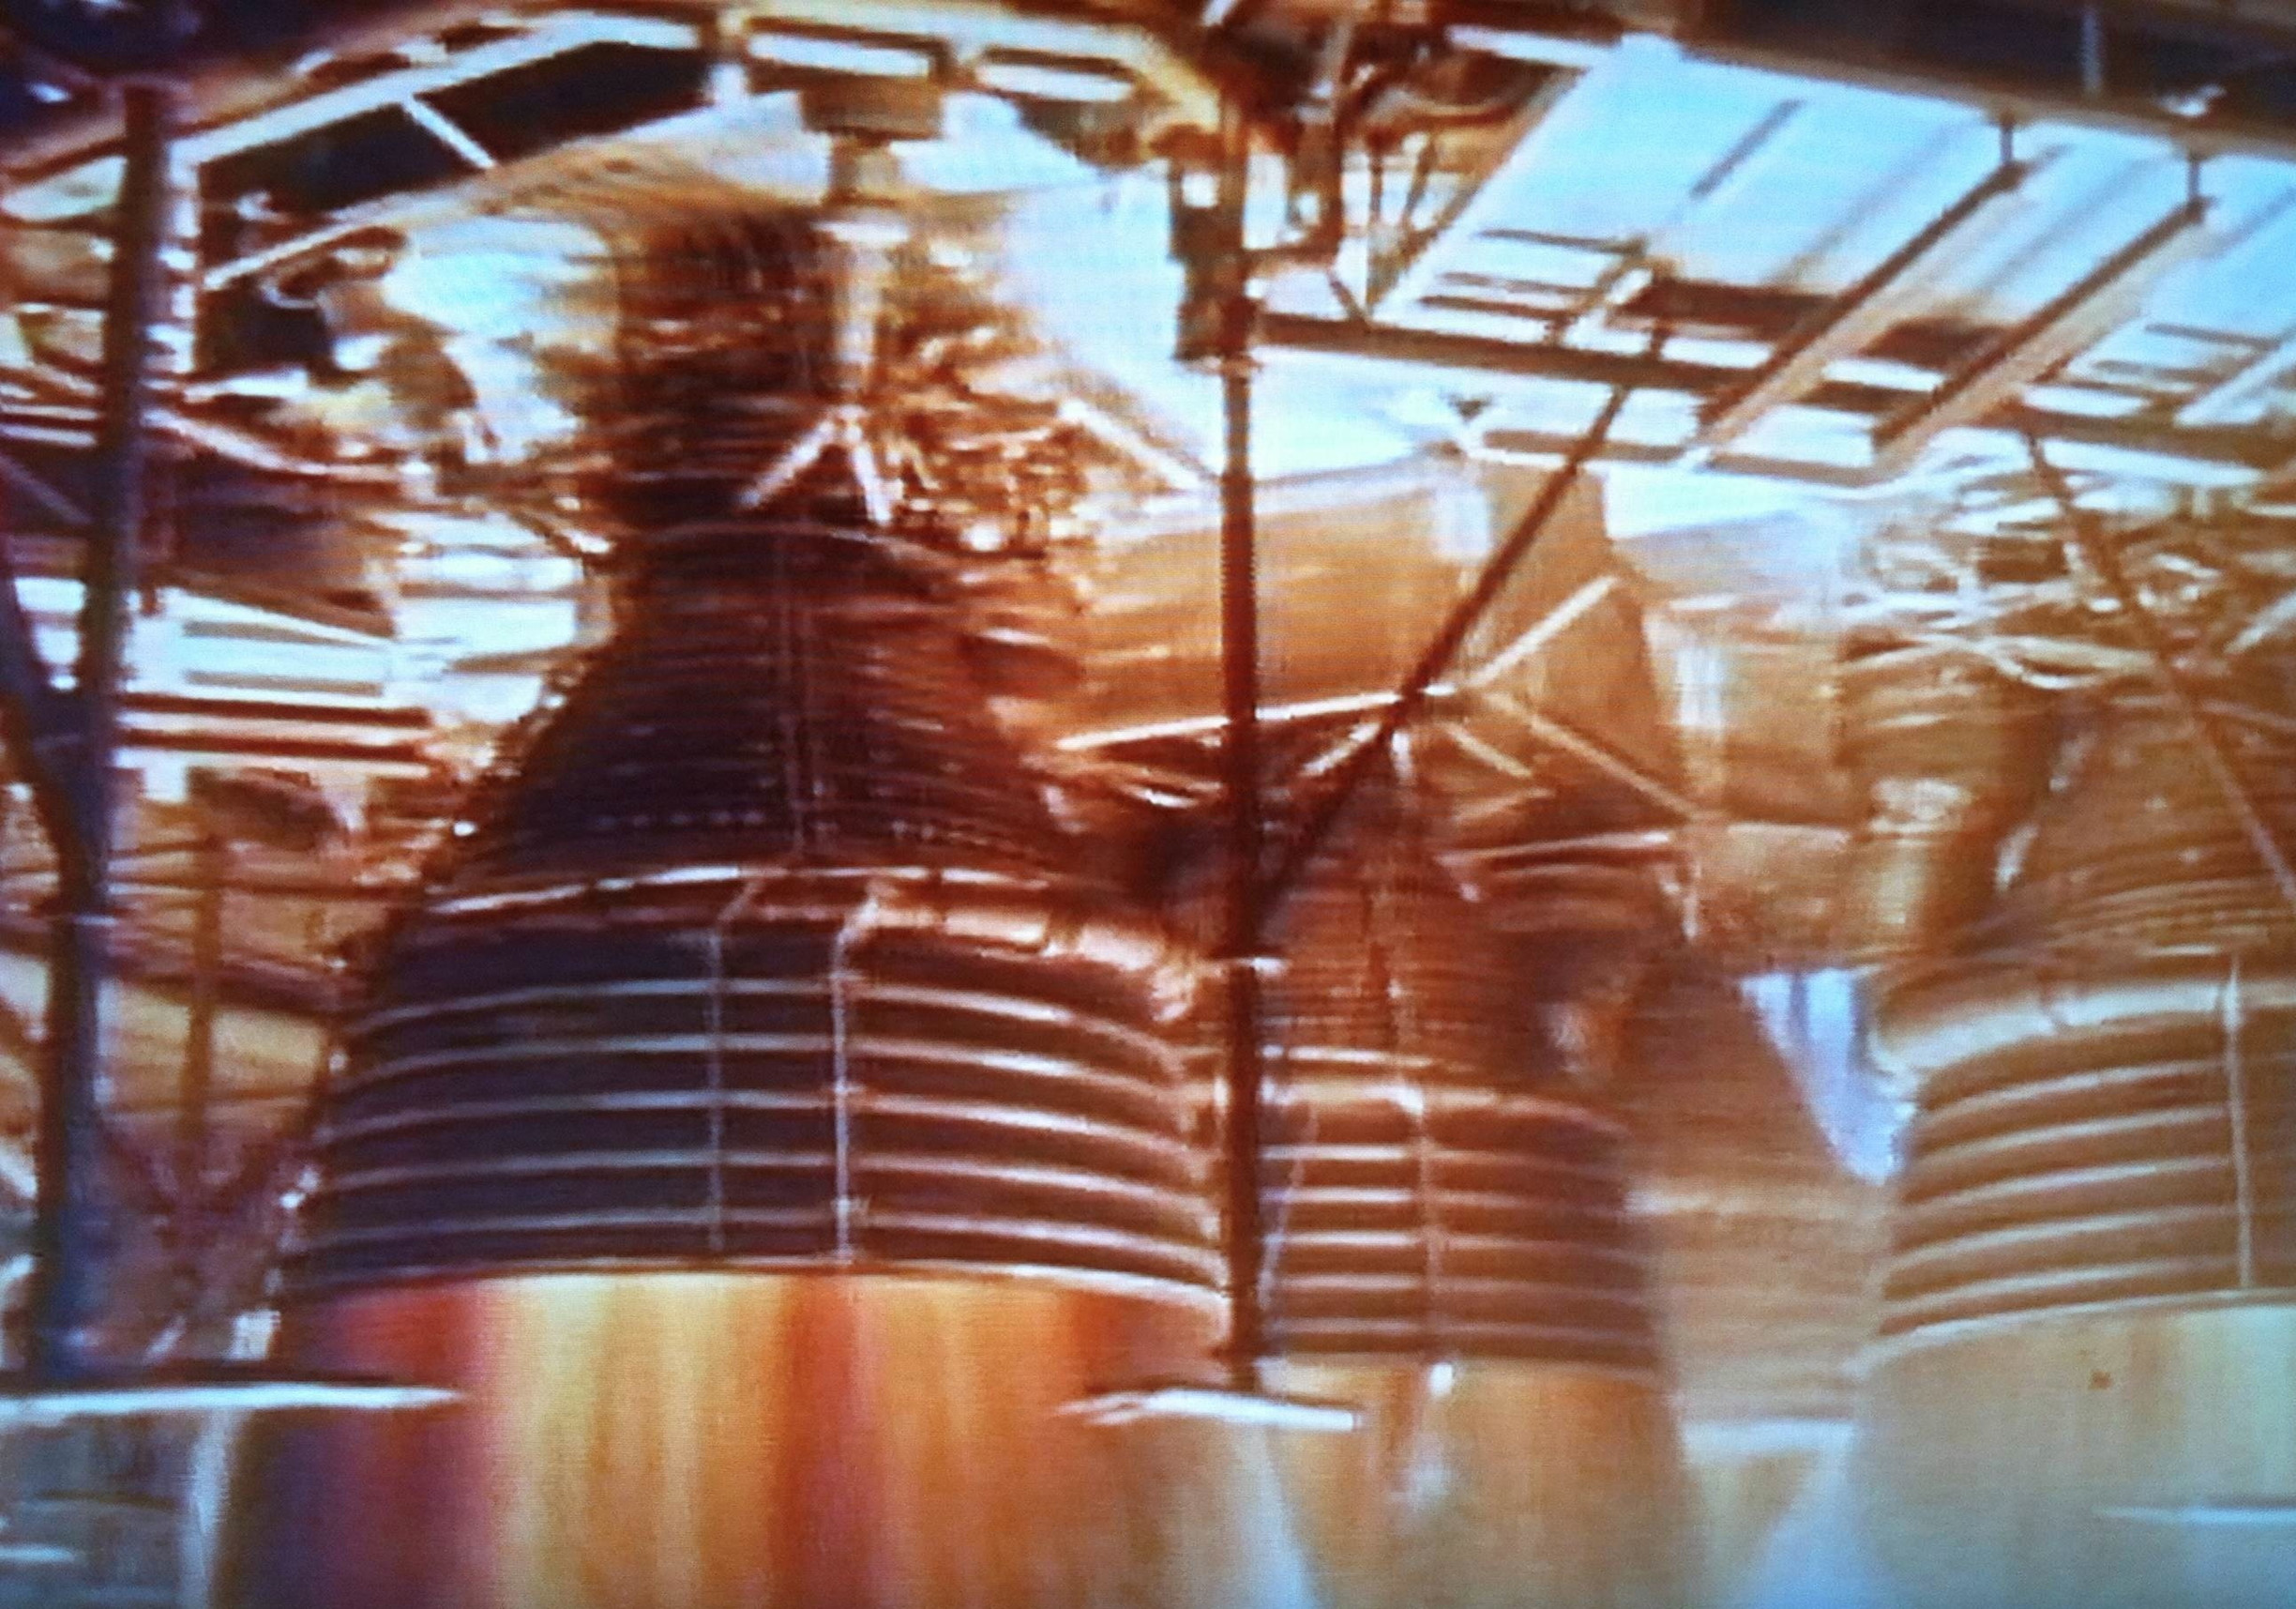 The F-1 Rocket Engine